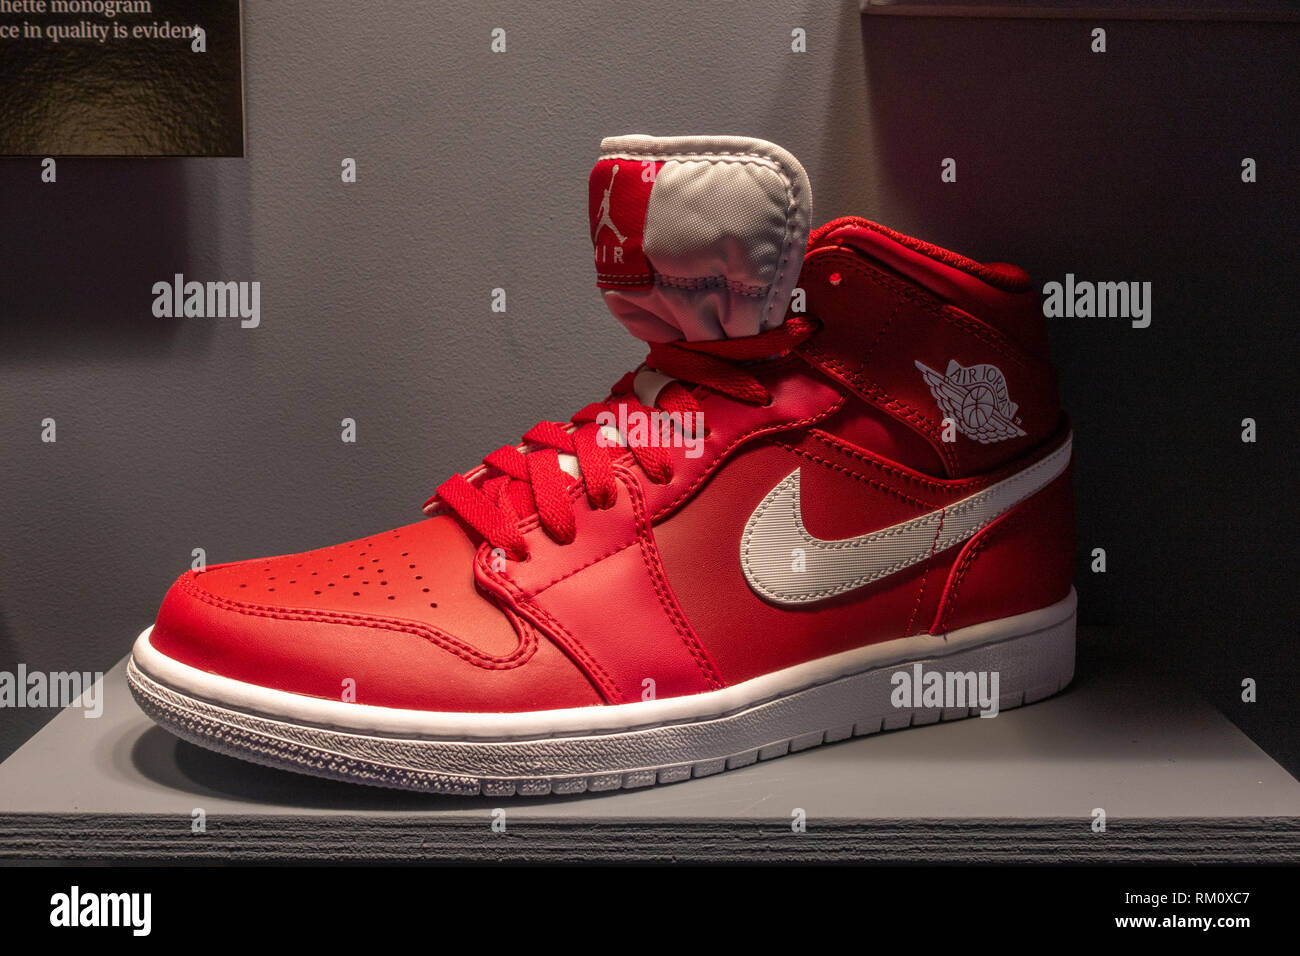 save off c9158 9337f A genuine Nike Air Jordan high-top shoe in the Fake or Real display,